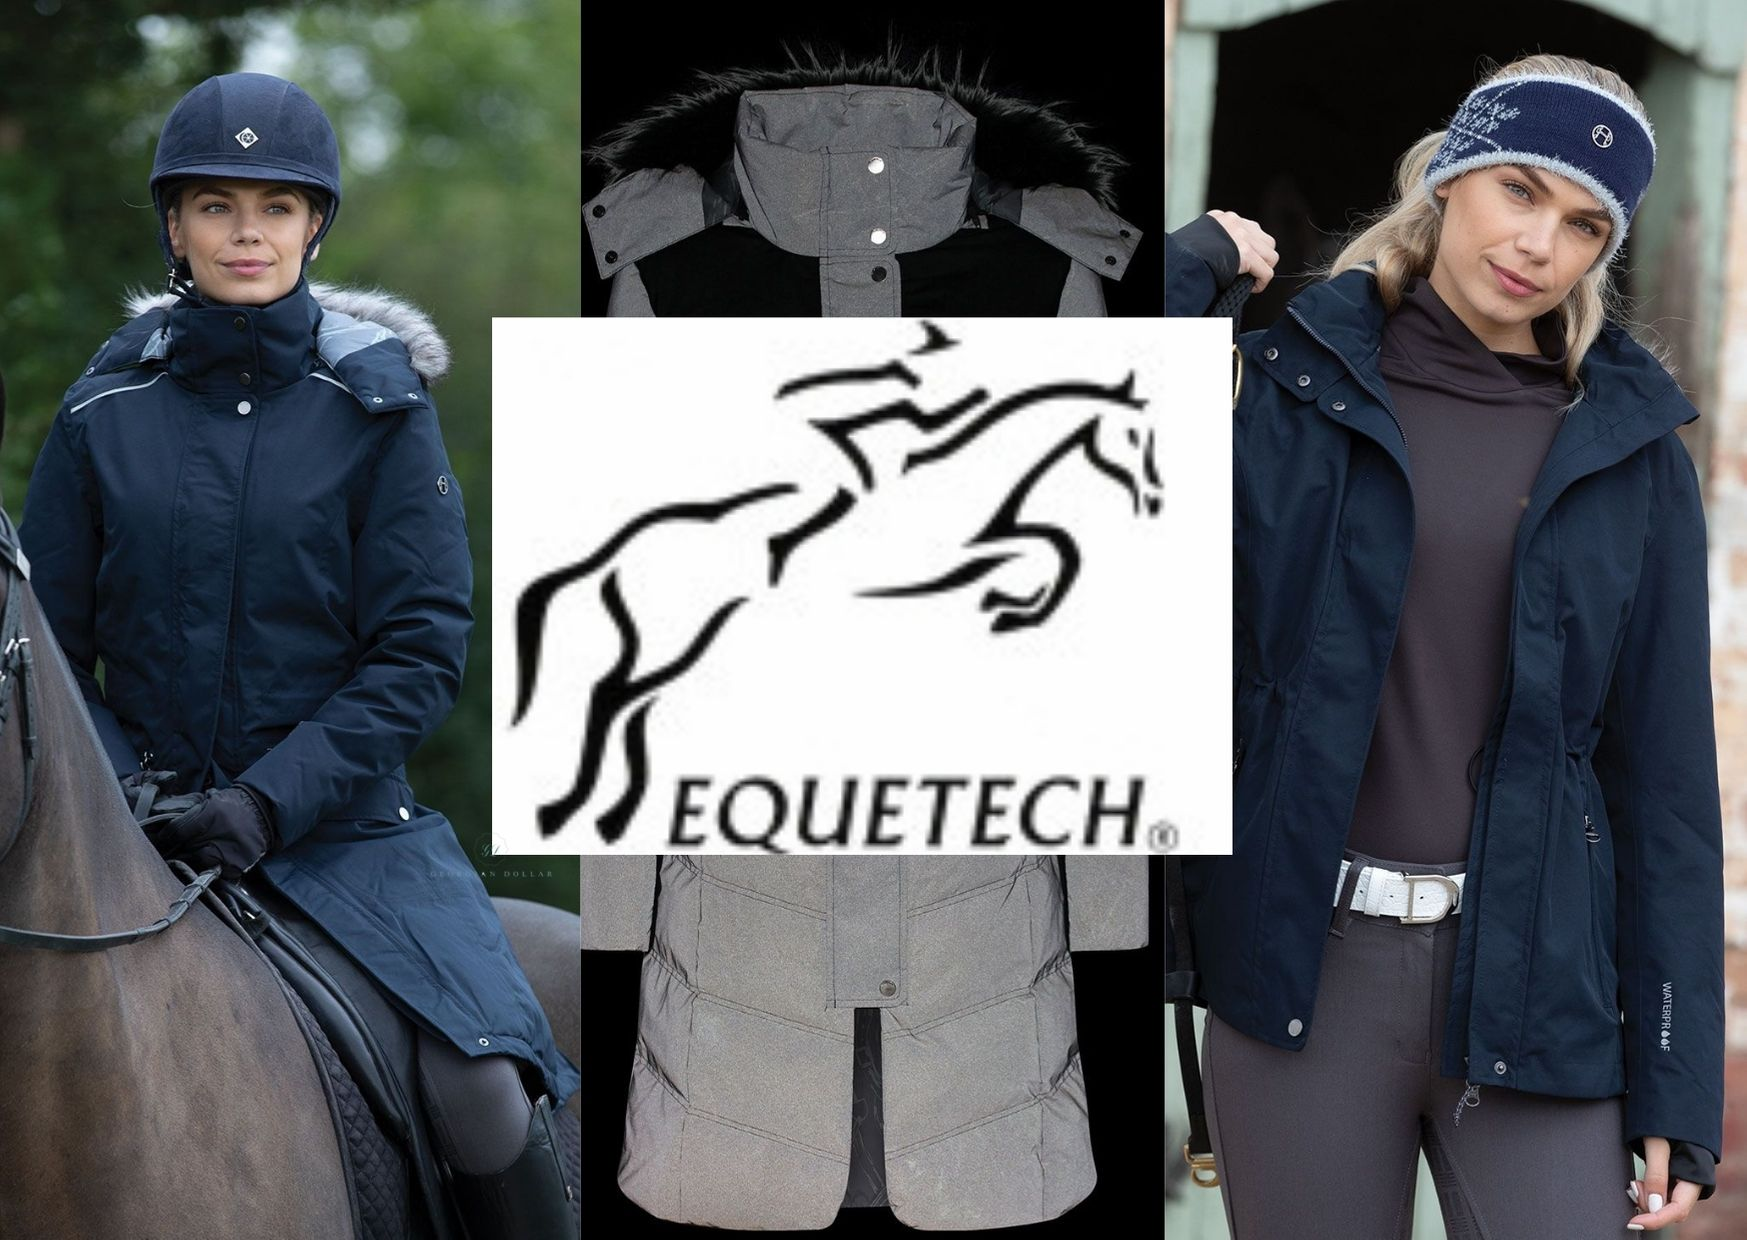 equetech long riding jackets waterproof